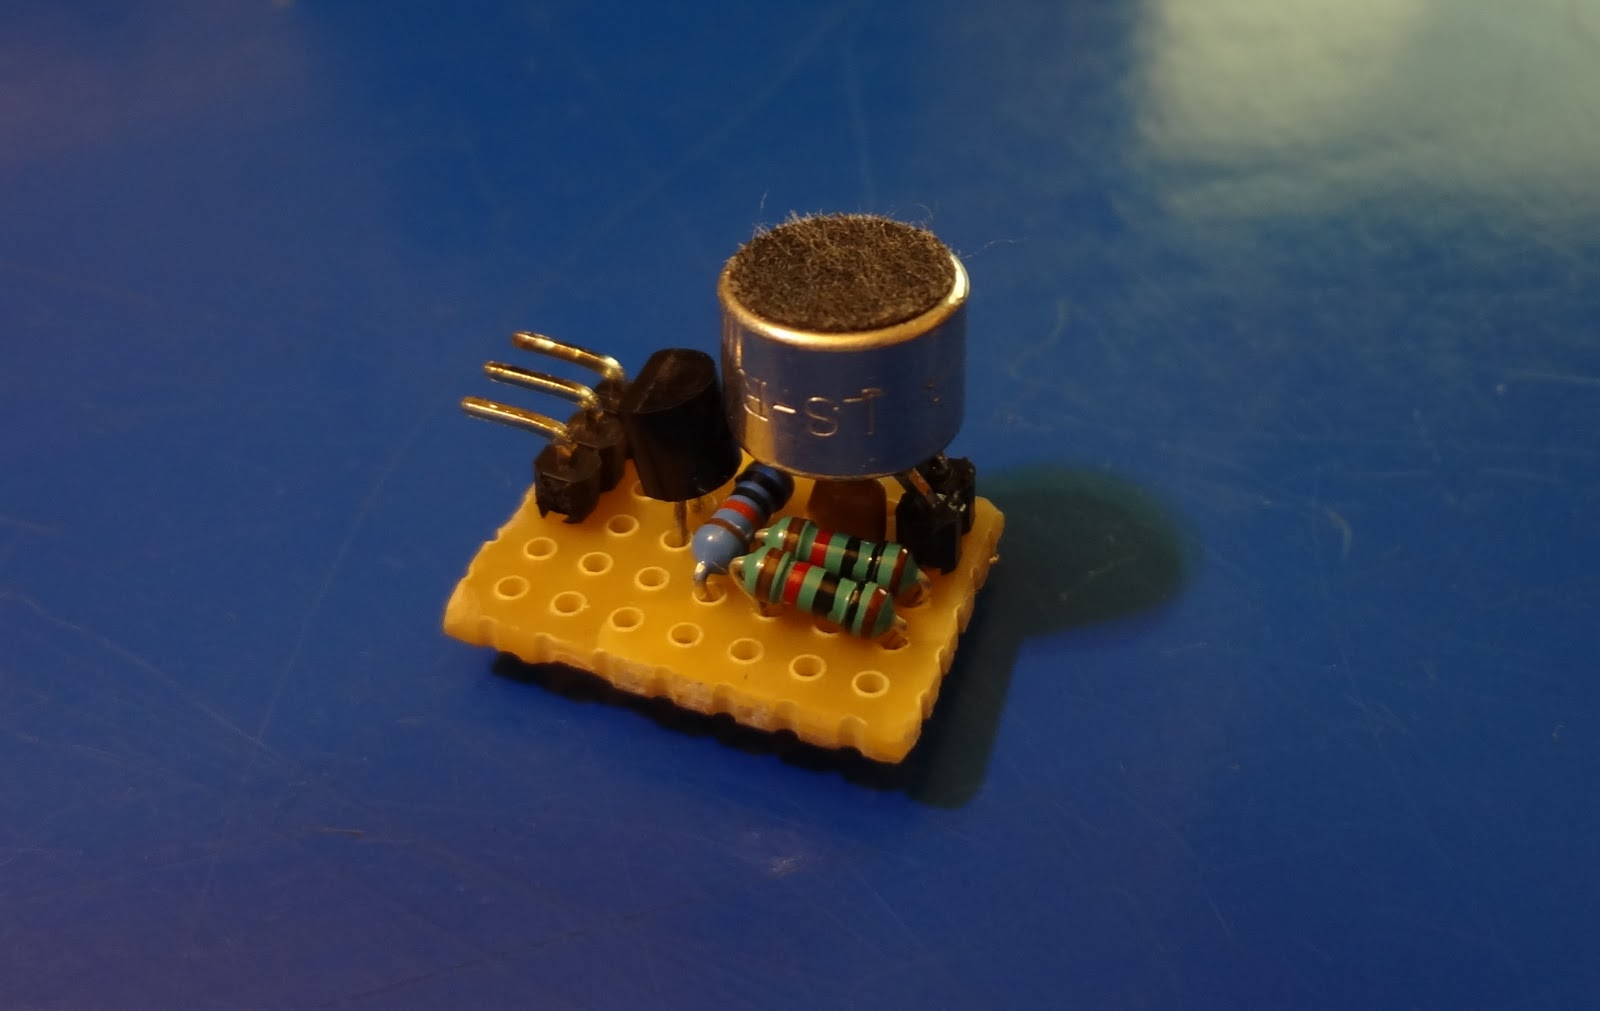 This Very Simple Audio Mixer Circuit Uses Only One Transistor The